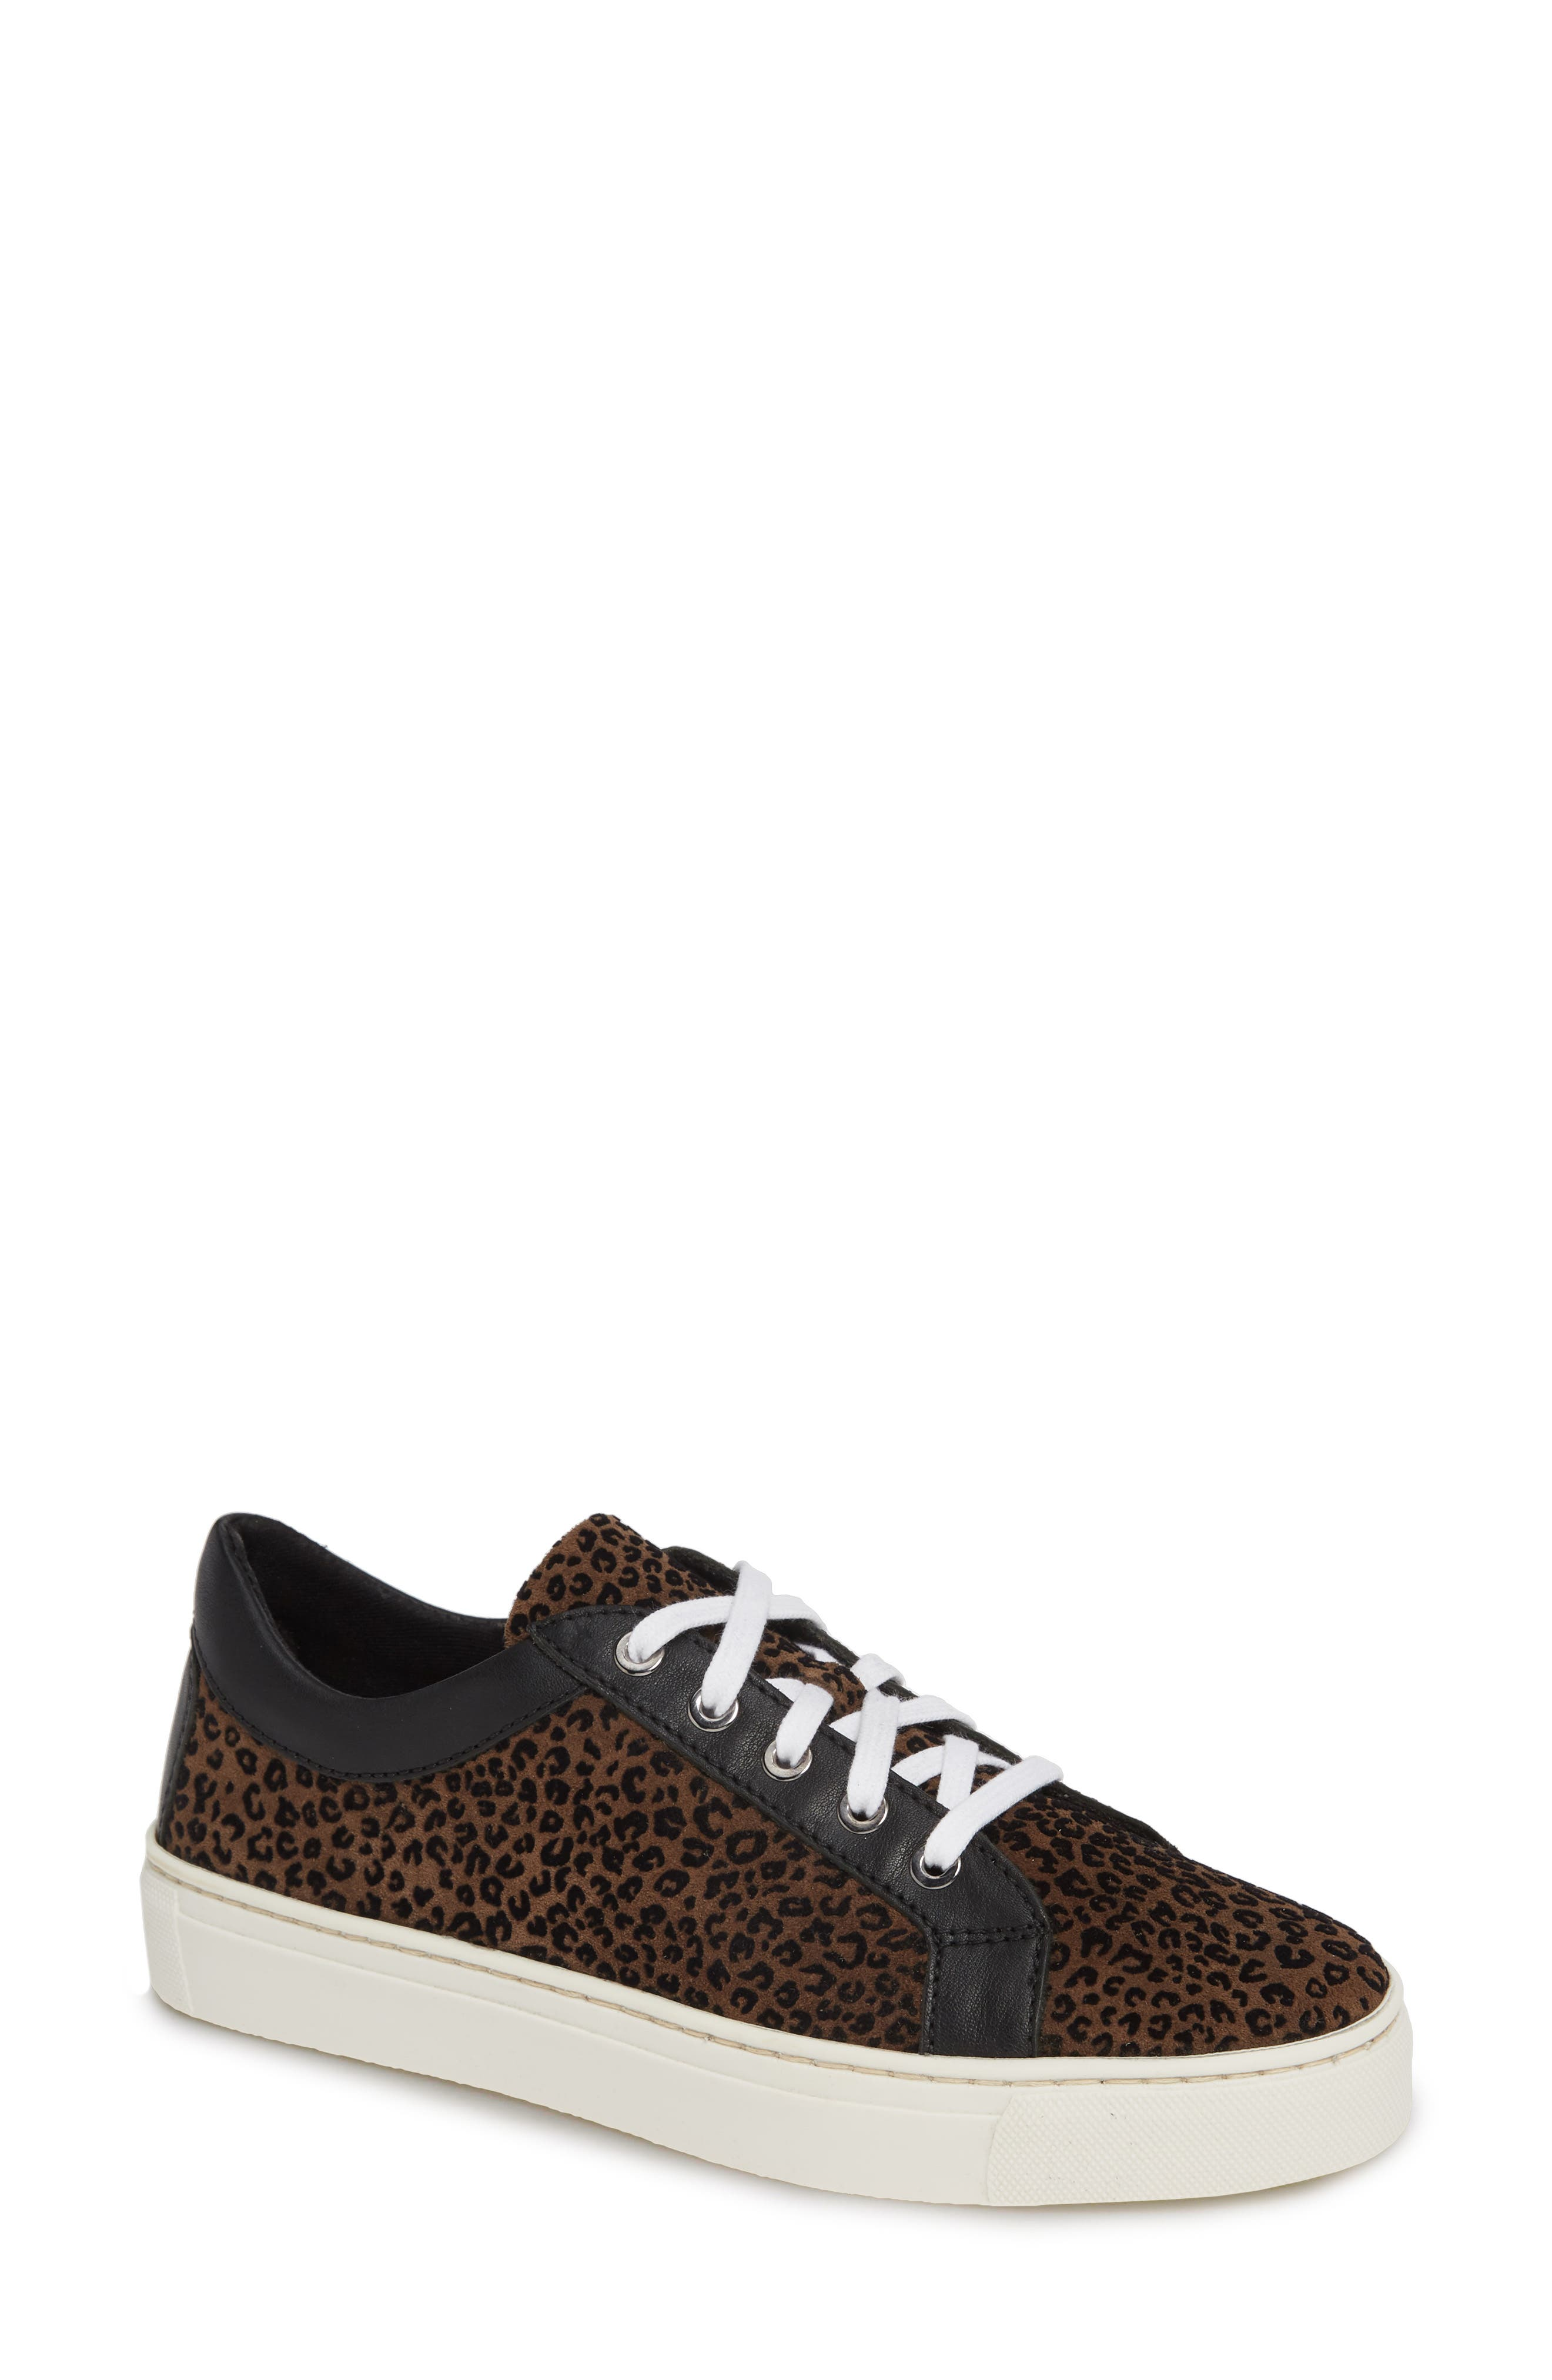 THE FLEXX,                             Sneak Away Sneaker,                             Main thumbnail 1, color,                             BEIGE/ BLACK SUEDE